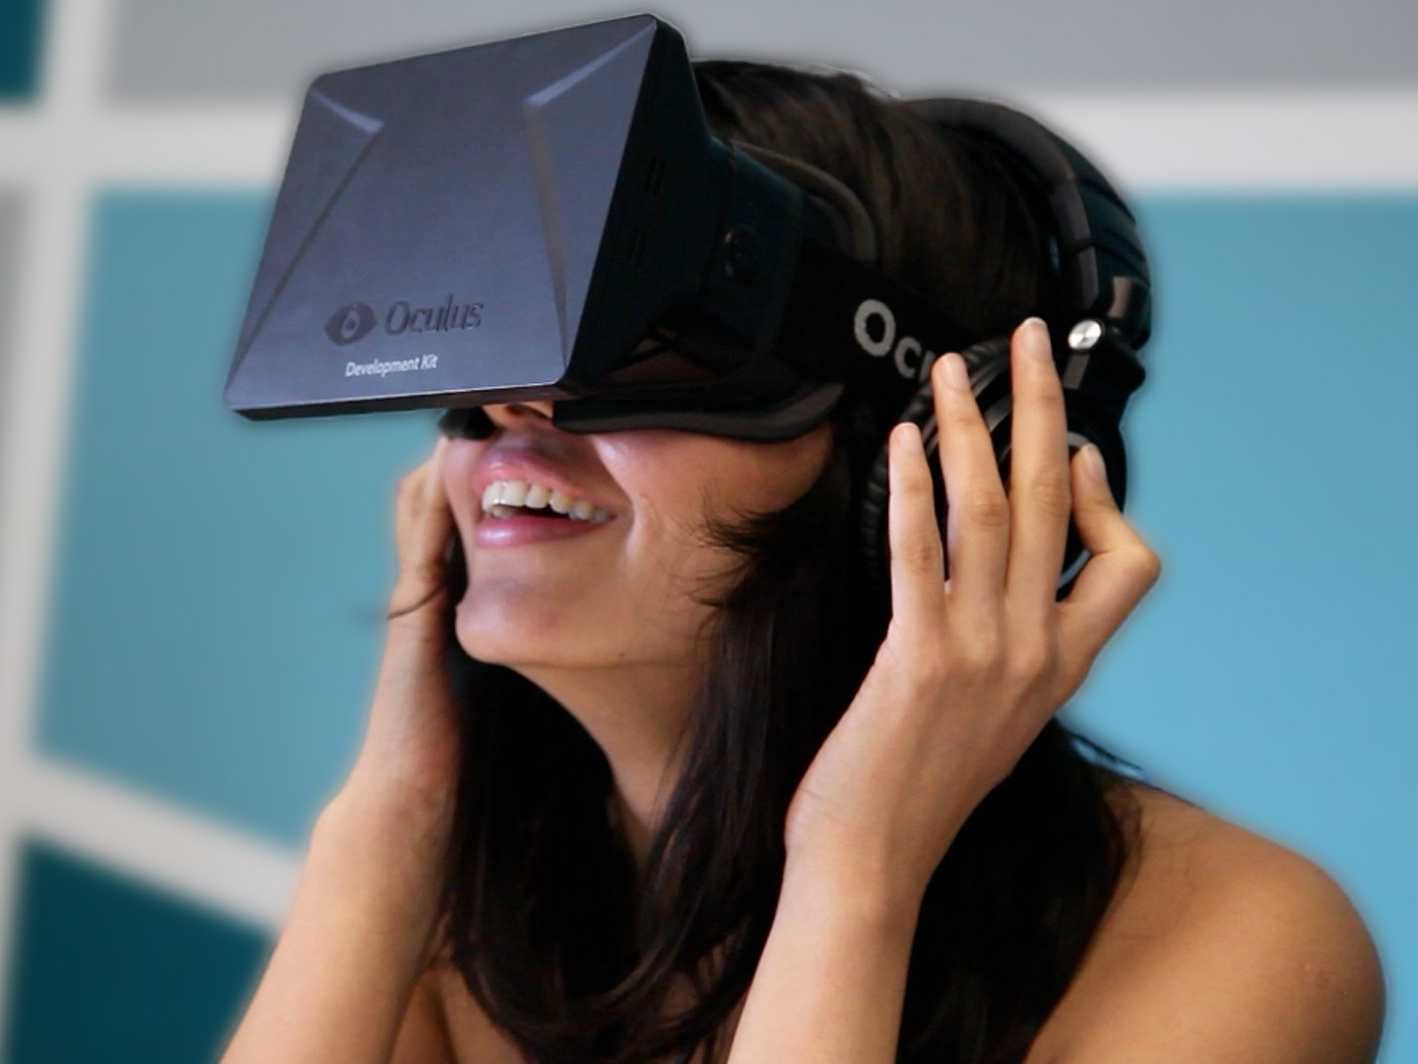 How to Watch Movies on Oculus Rift Development Kit 2 DK2?